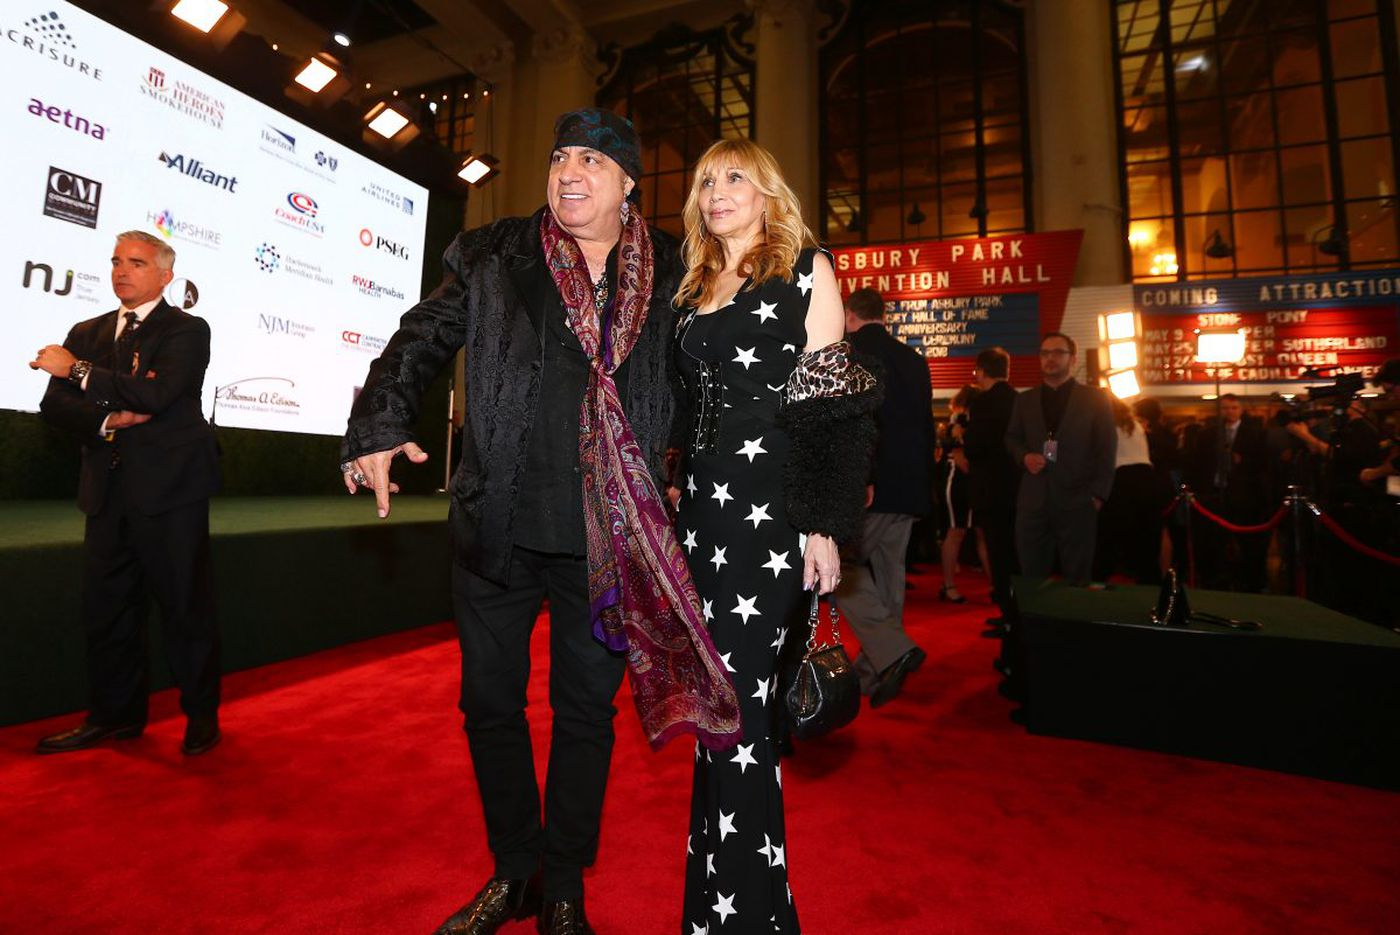 Watch: Bruce Springsteen inducts Steven Van Zandt into NJ Hall of Fame in surprise stop